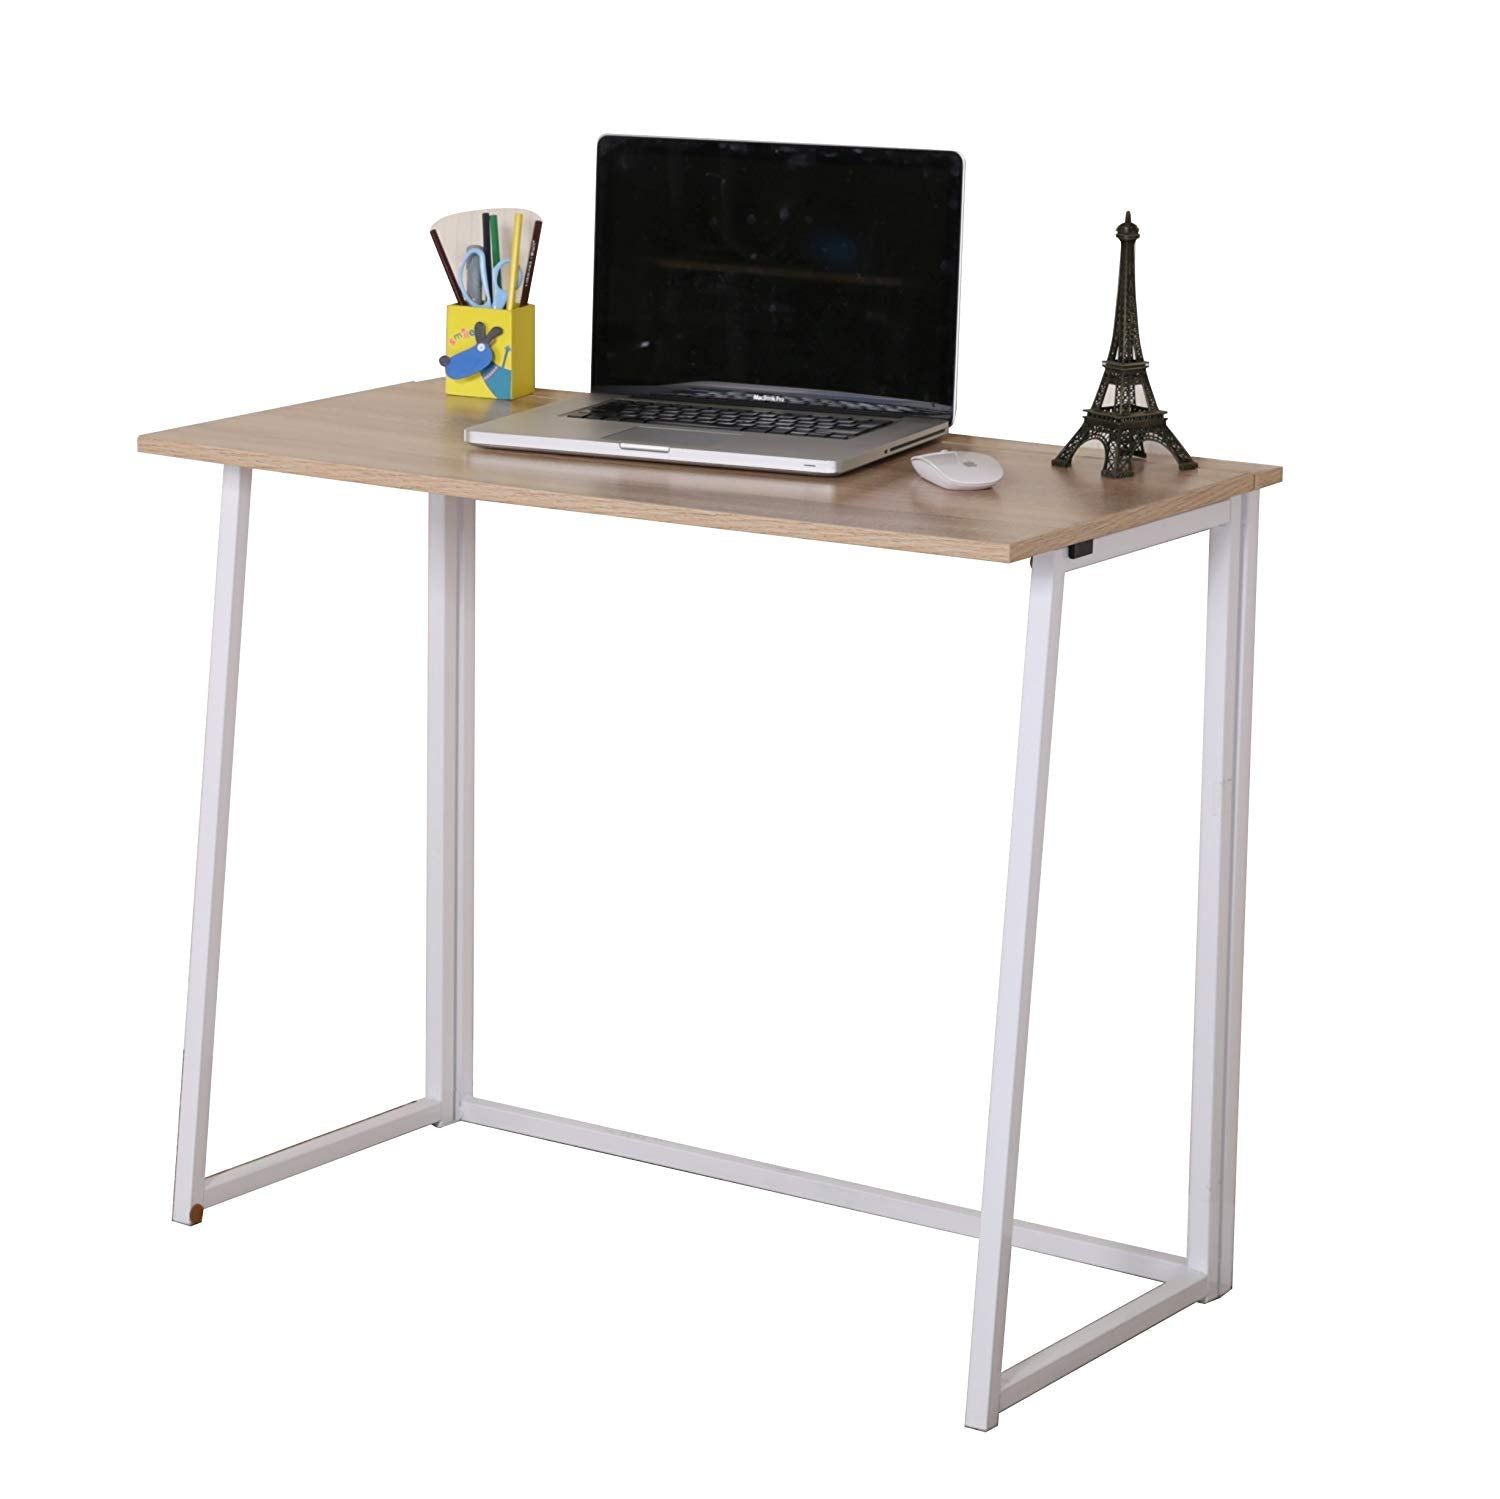 Compact Folding Desk In Natural No Assembly Shop Designer Home Furnishings